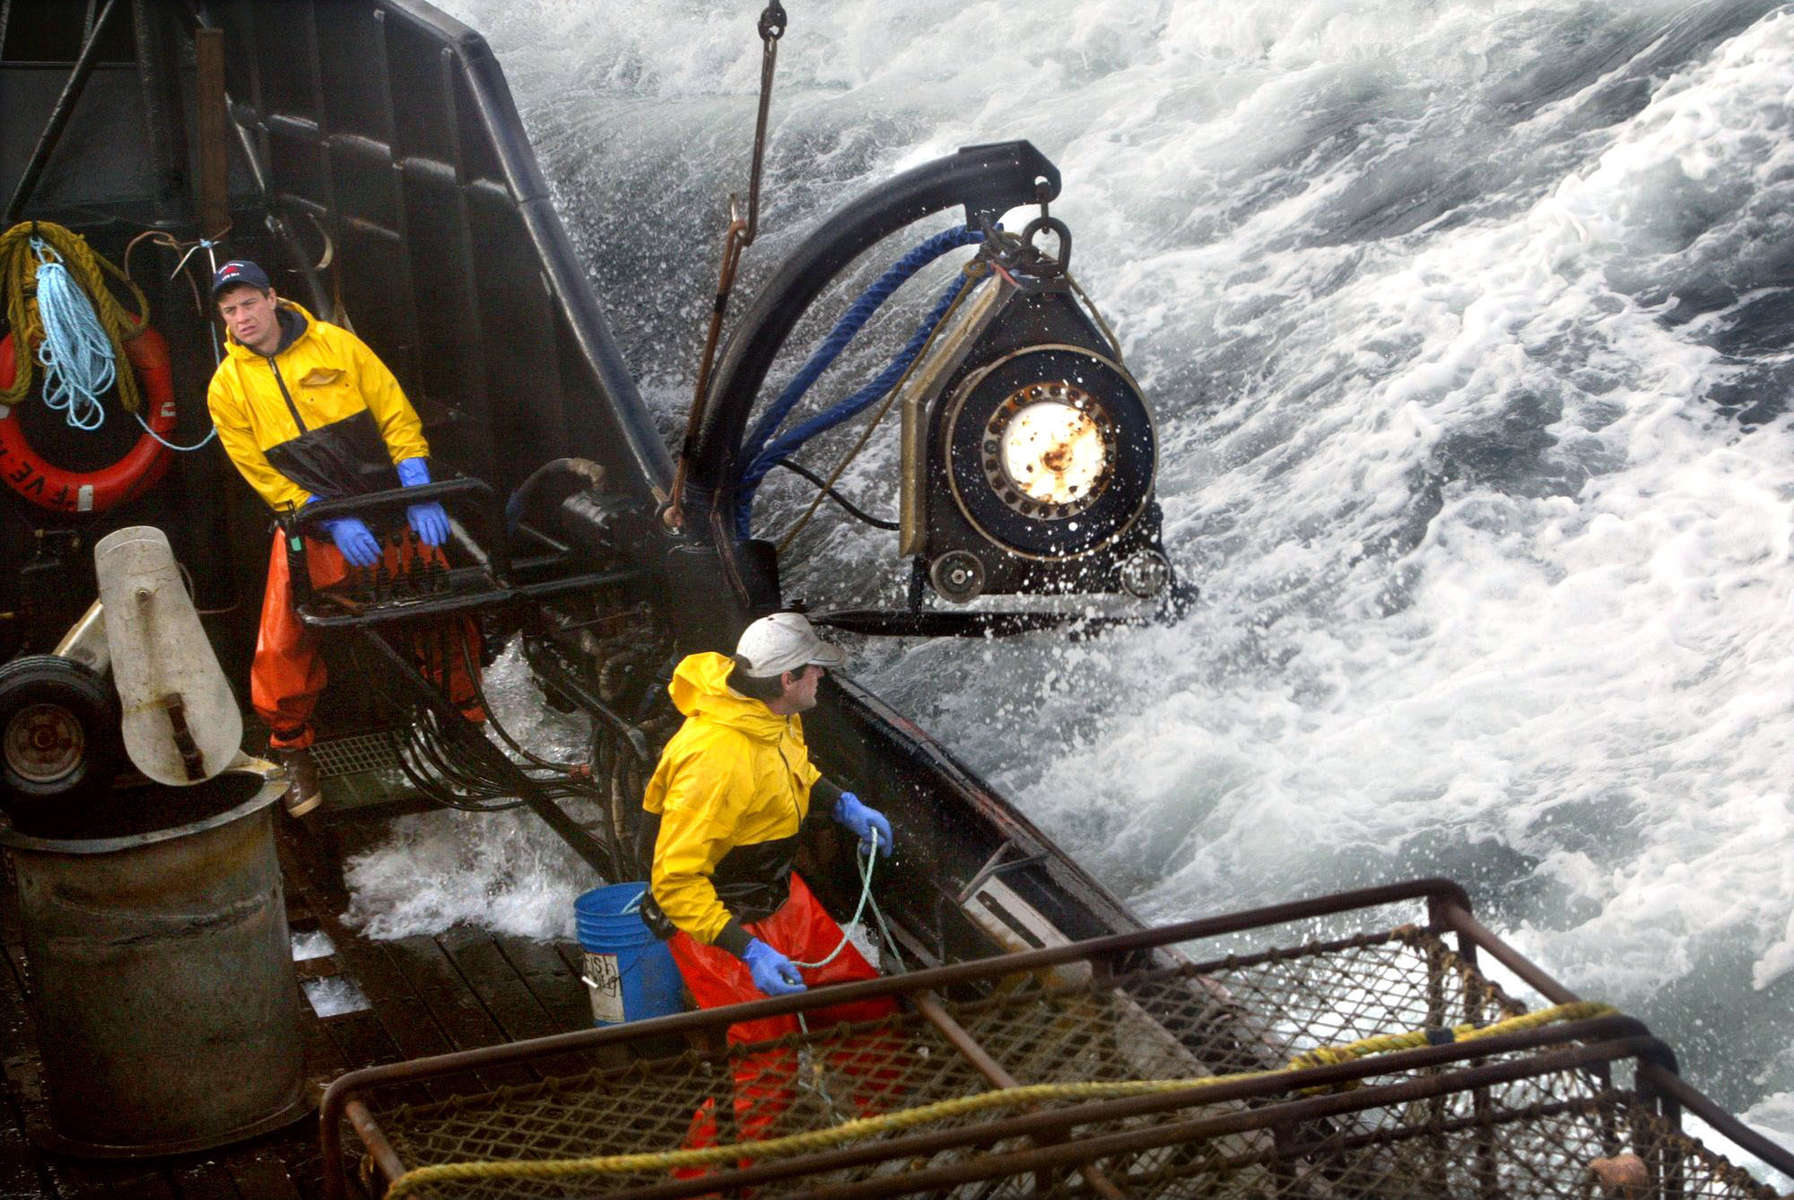 Crewman Lee Fleury prepares to throw the grappling hook at a crab pot buoy off in the distance while Lyndon Yockey (rear) runs the hydrolics to manuever heavy crab pots being stacked onboard. The 20003 Bristol Bay red king crab season lasted 5 days and 2 hours and was plagued with gale force winds of 35 knots or higher almost everyday causing to seas to rise 10 to 15 feet. (© copyright Karen Ducey)